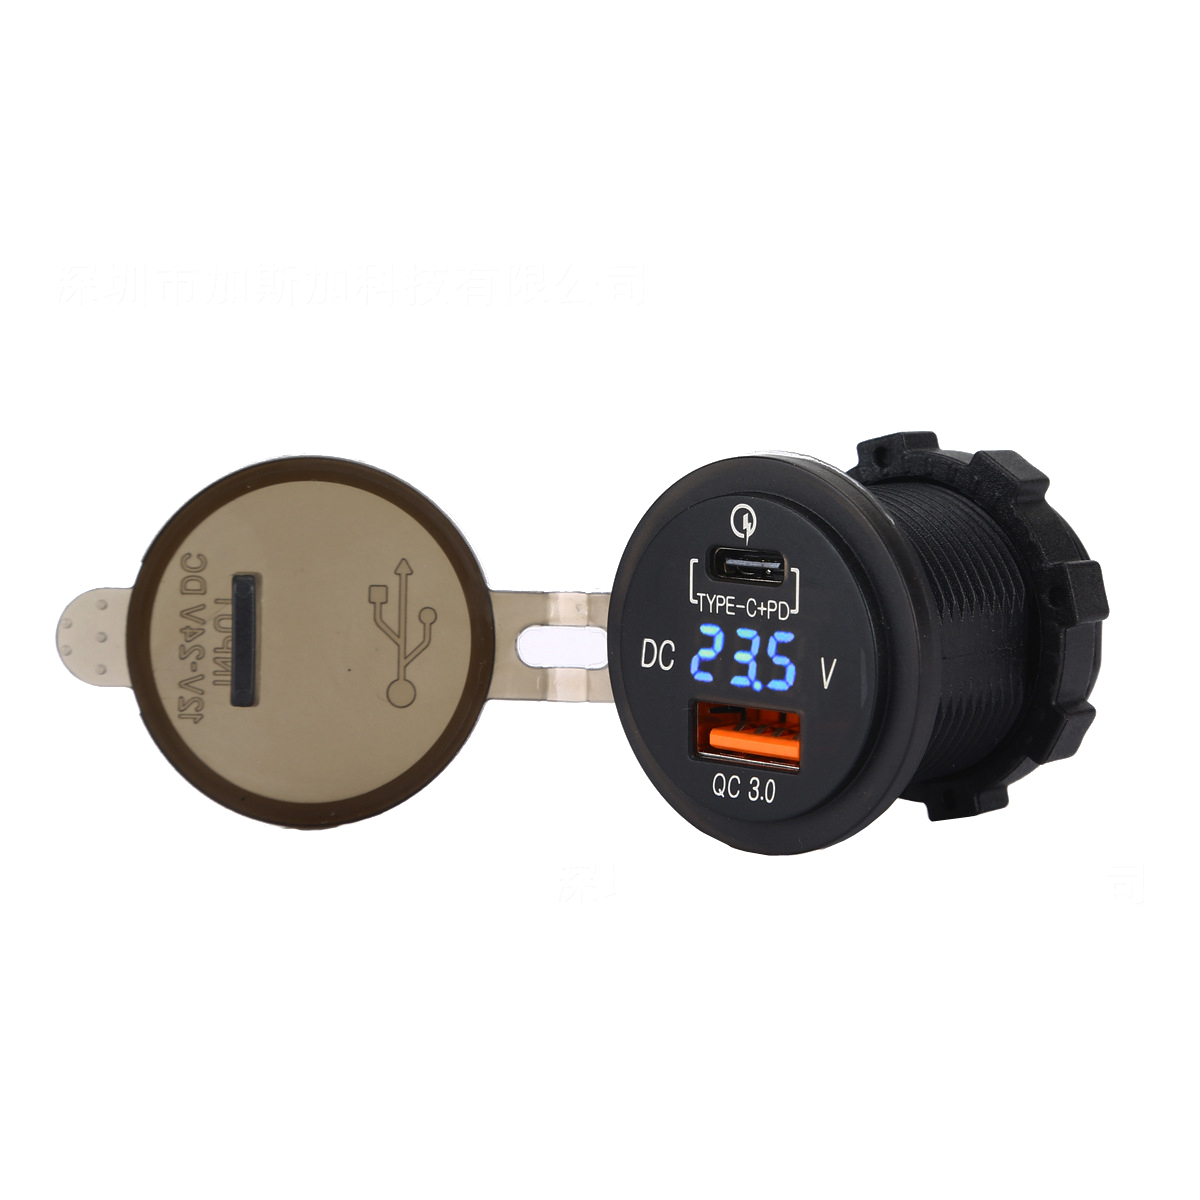 Fast USB PD Type C PD Car Charger with USB Power Delivery 2.0 & Quick Charge 3.0 QC3.0 QC 3.0 for Car Boat Marine Rv Mobile